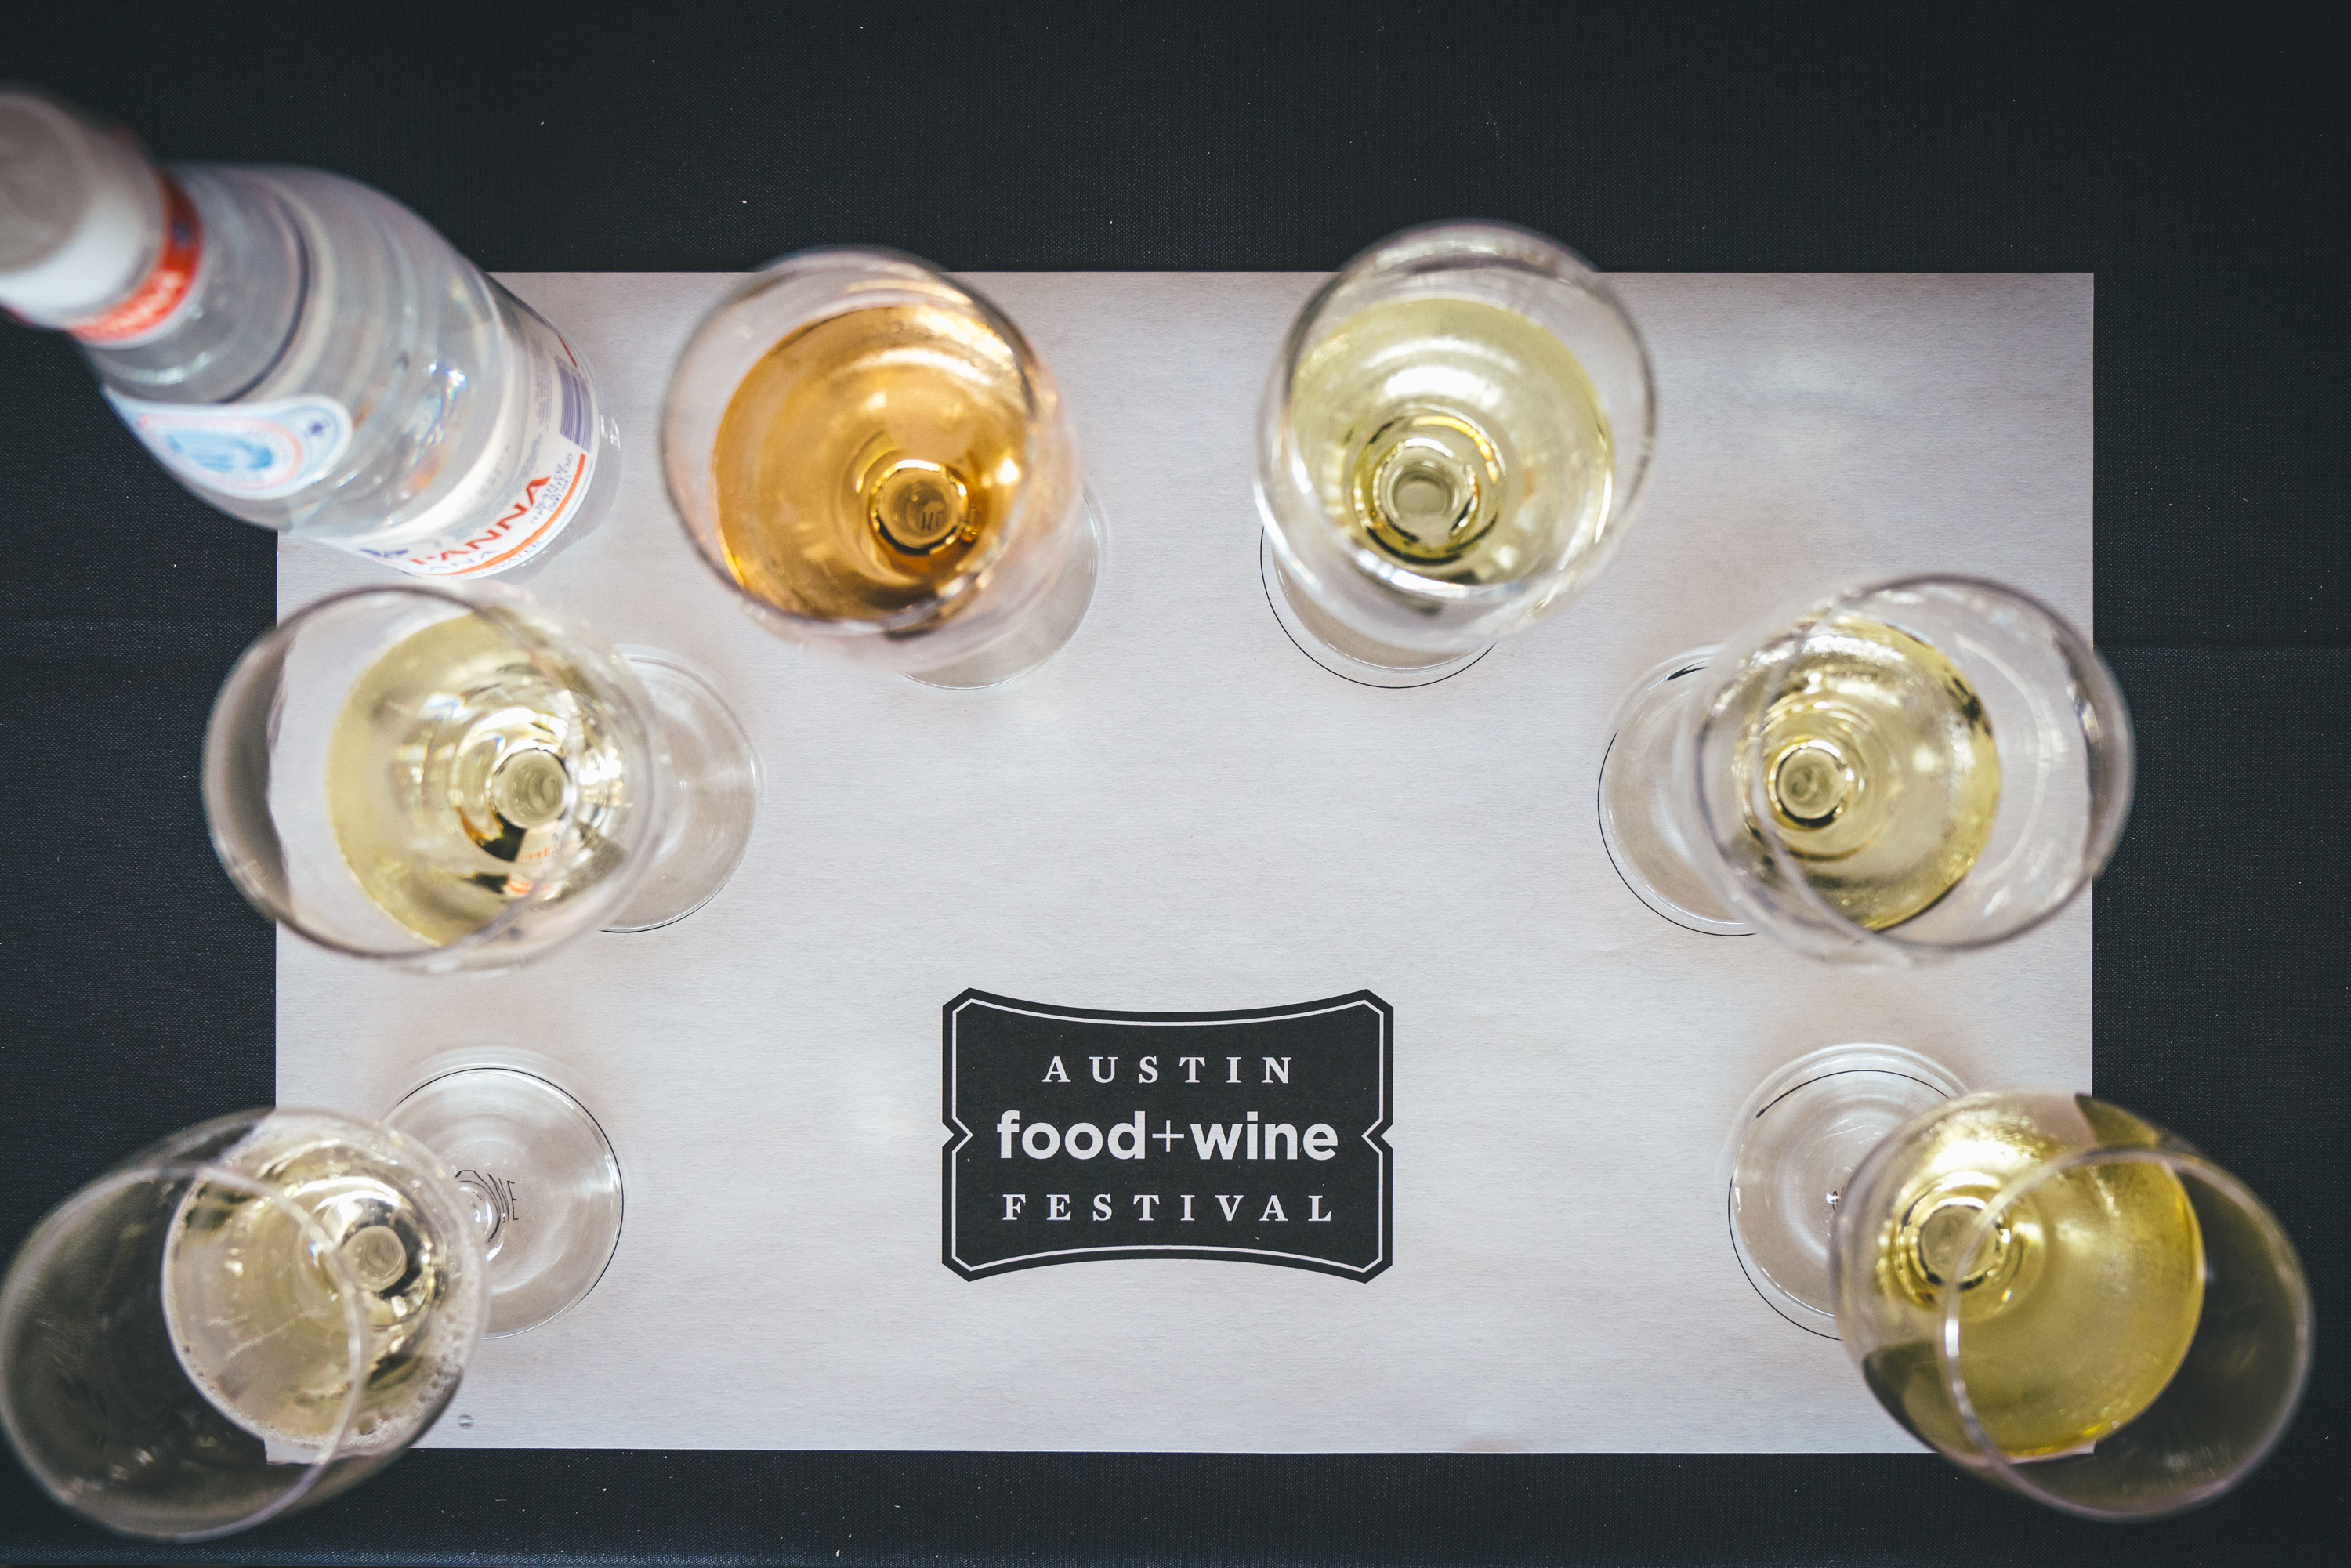 Austin Food & Wine Festival Returns for 2020 With Another Star-Studded Lineup